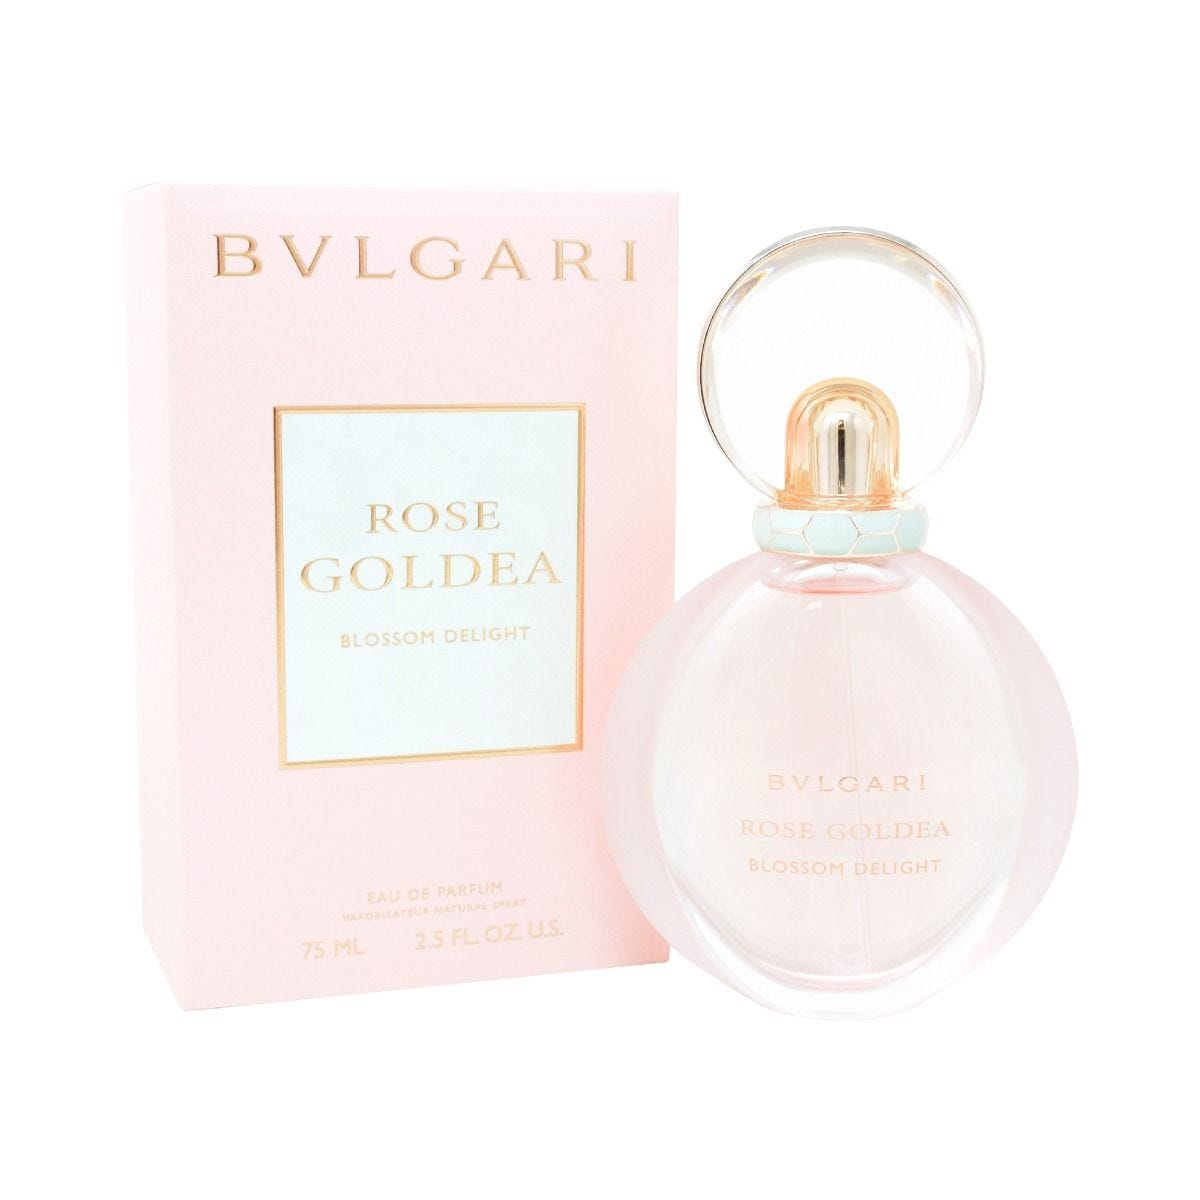 BVLGARI  -  ROSE GOLDEA BLOSSOM DELIGHT